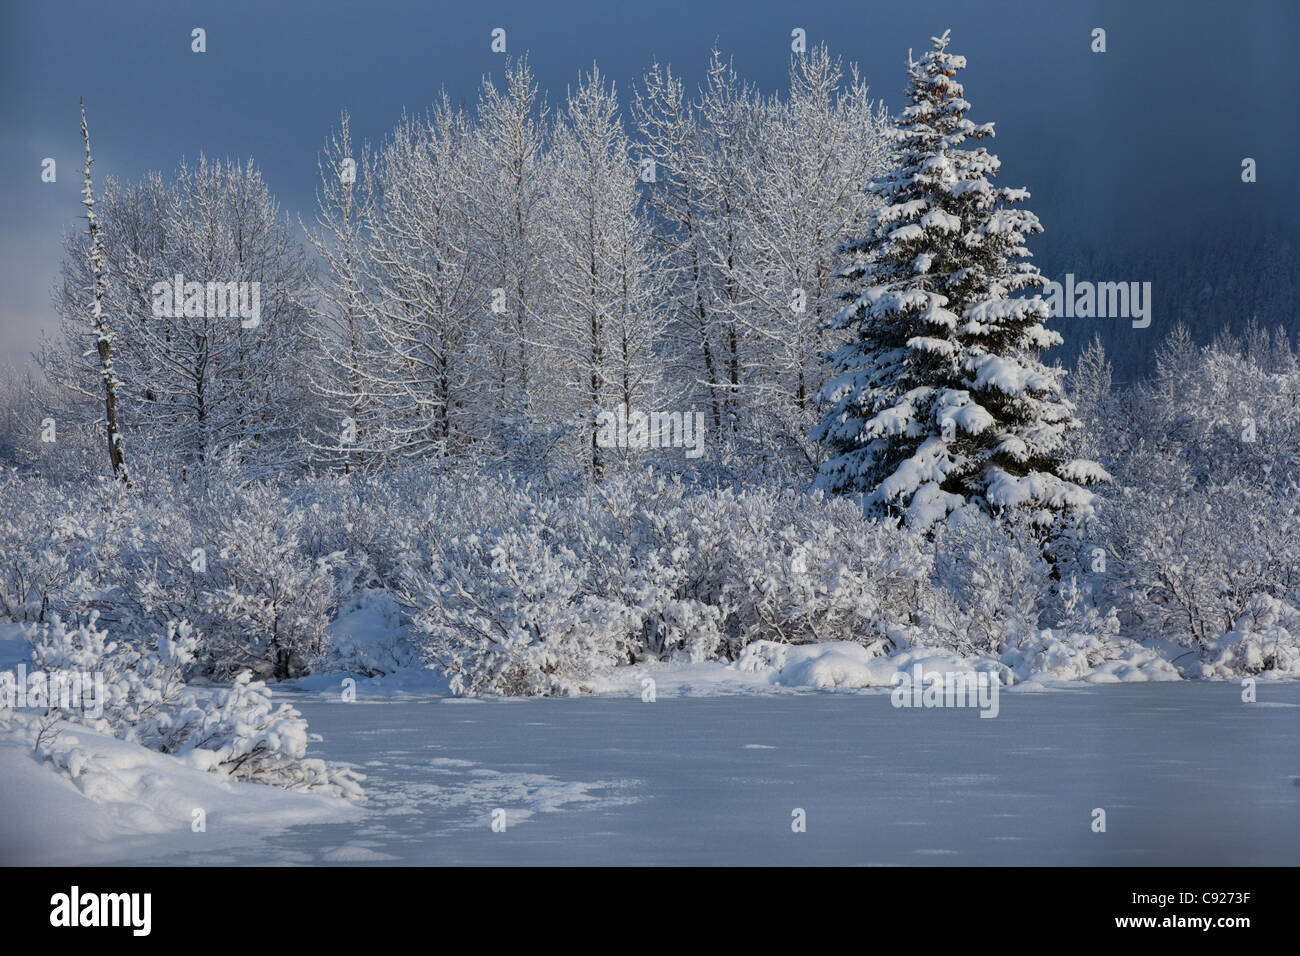 Snowcovered winter scene of a small pond and trees in the Portage Valley, Southcentral Alaska, Winter - Stock Image